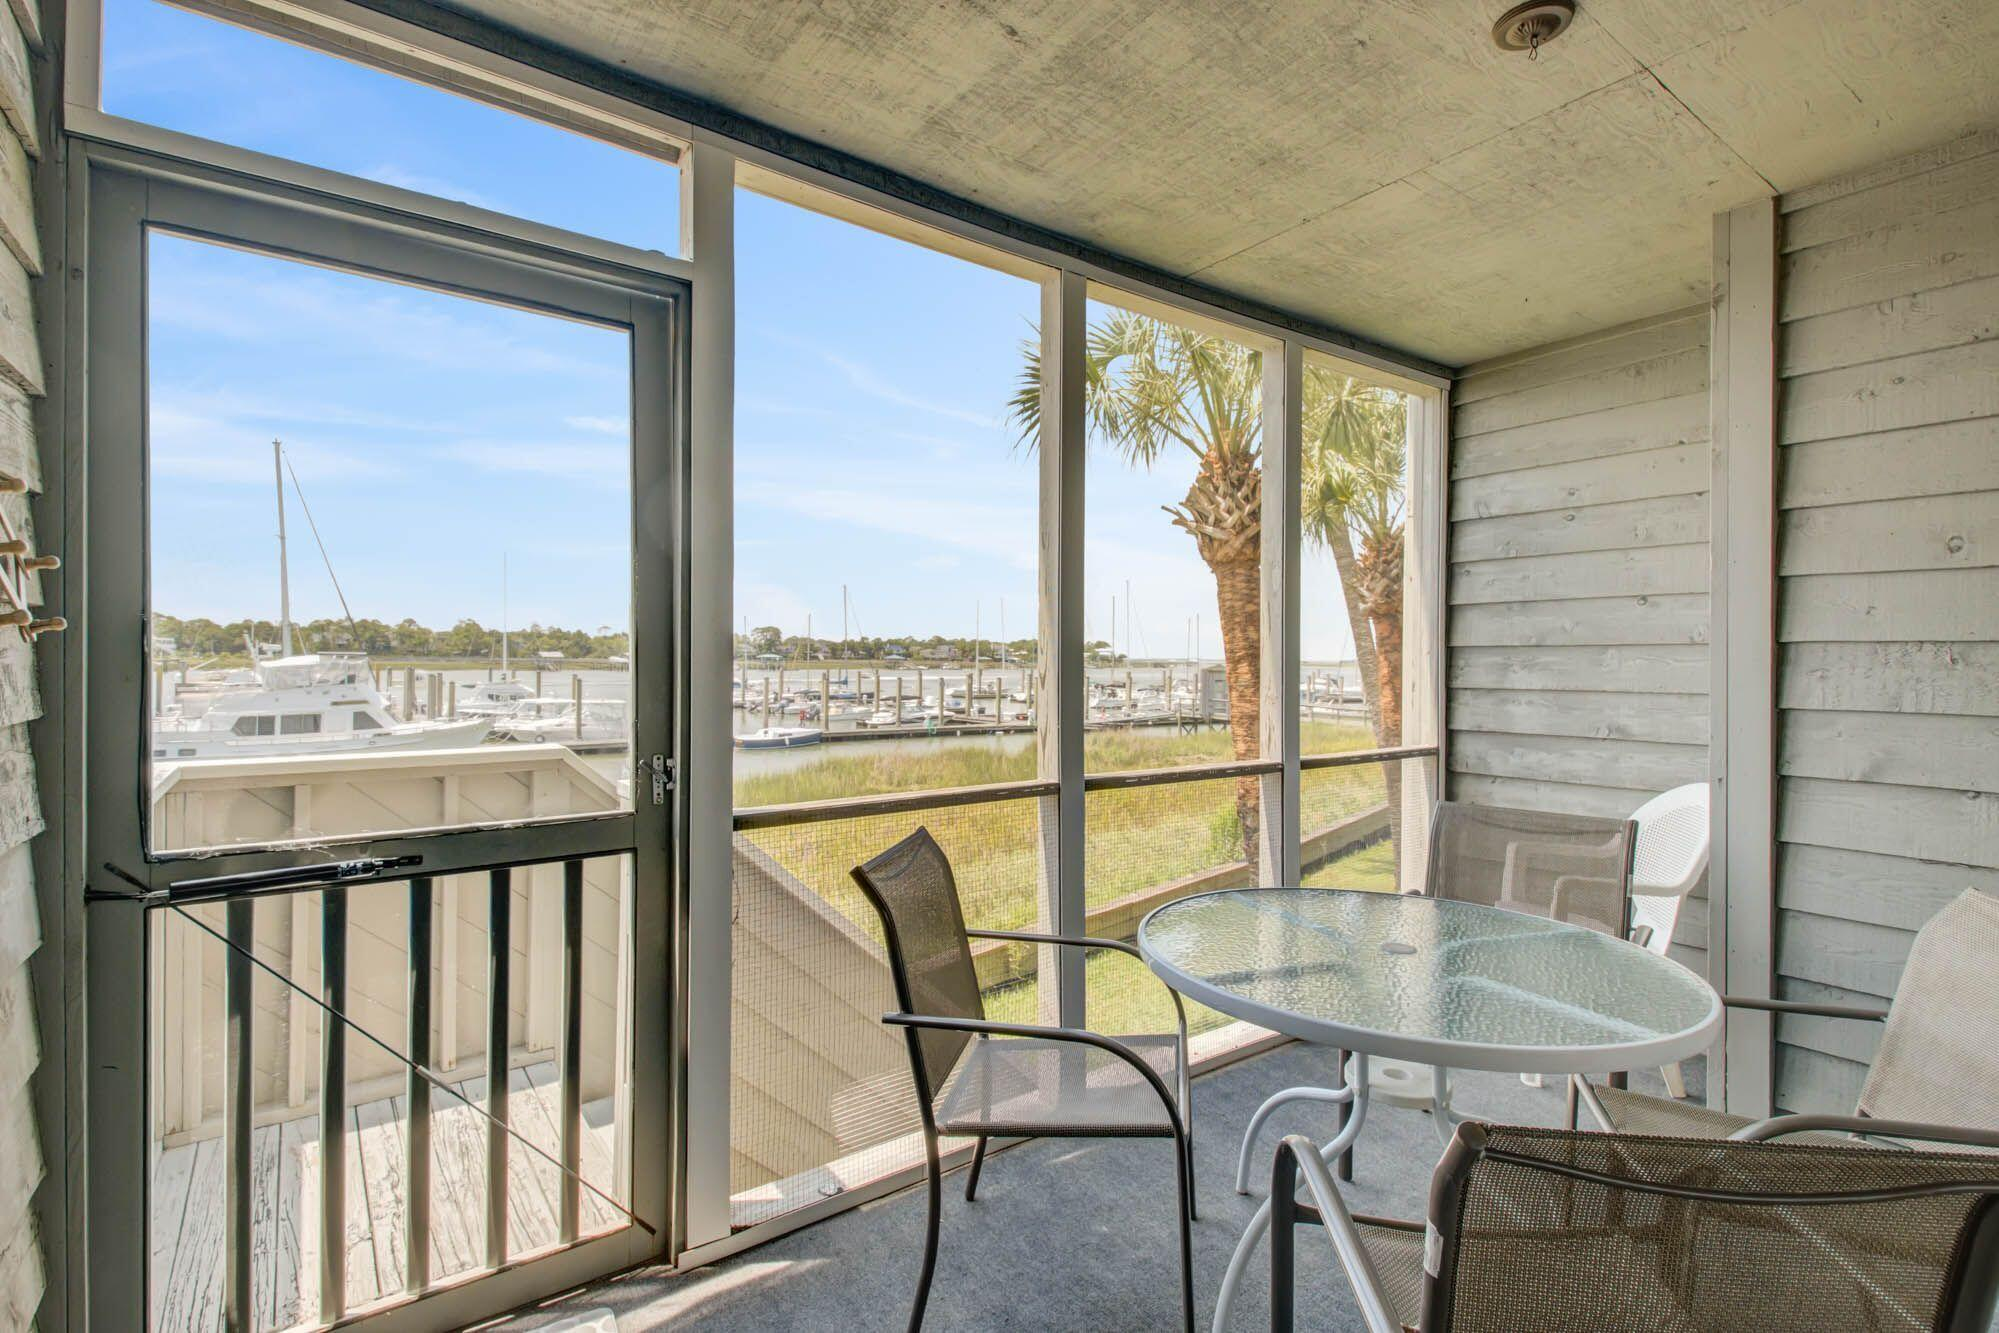 Mariners Cay Homes For Sale - 51 Mariners Cay, Folly Beach, SC - 18